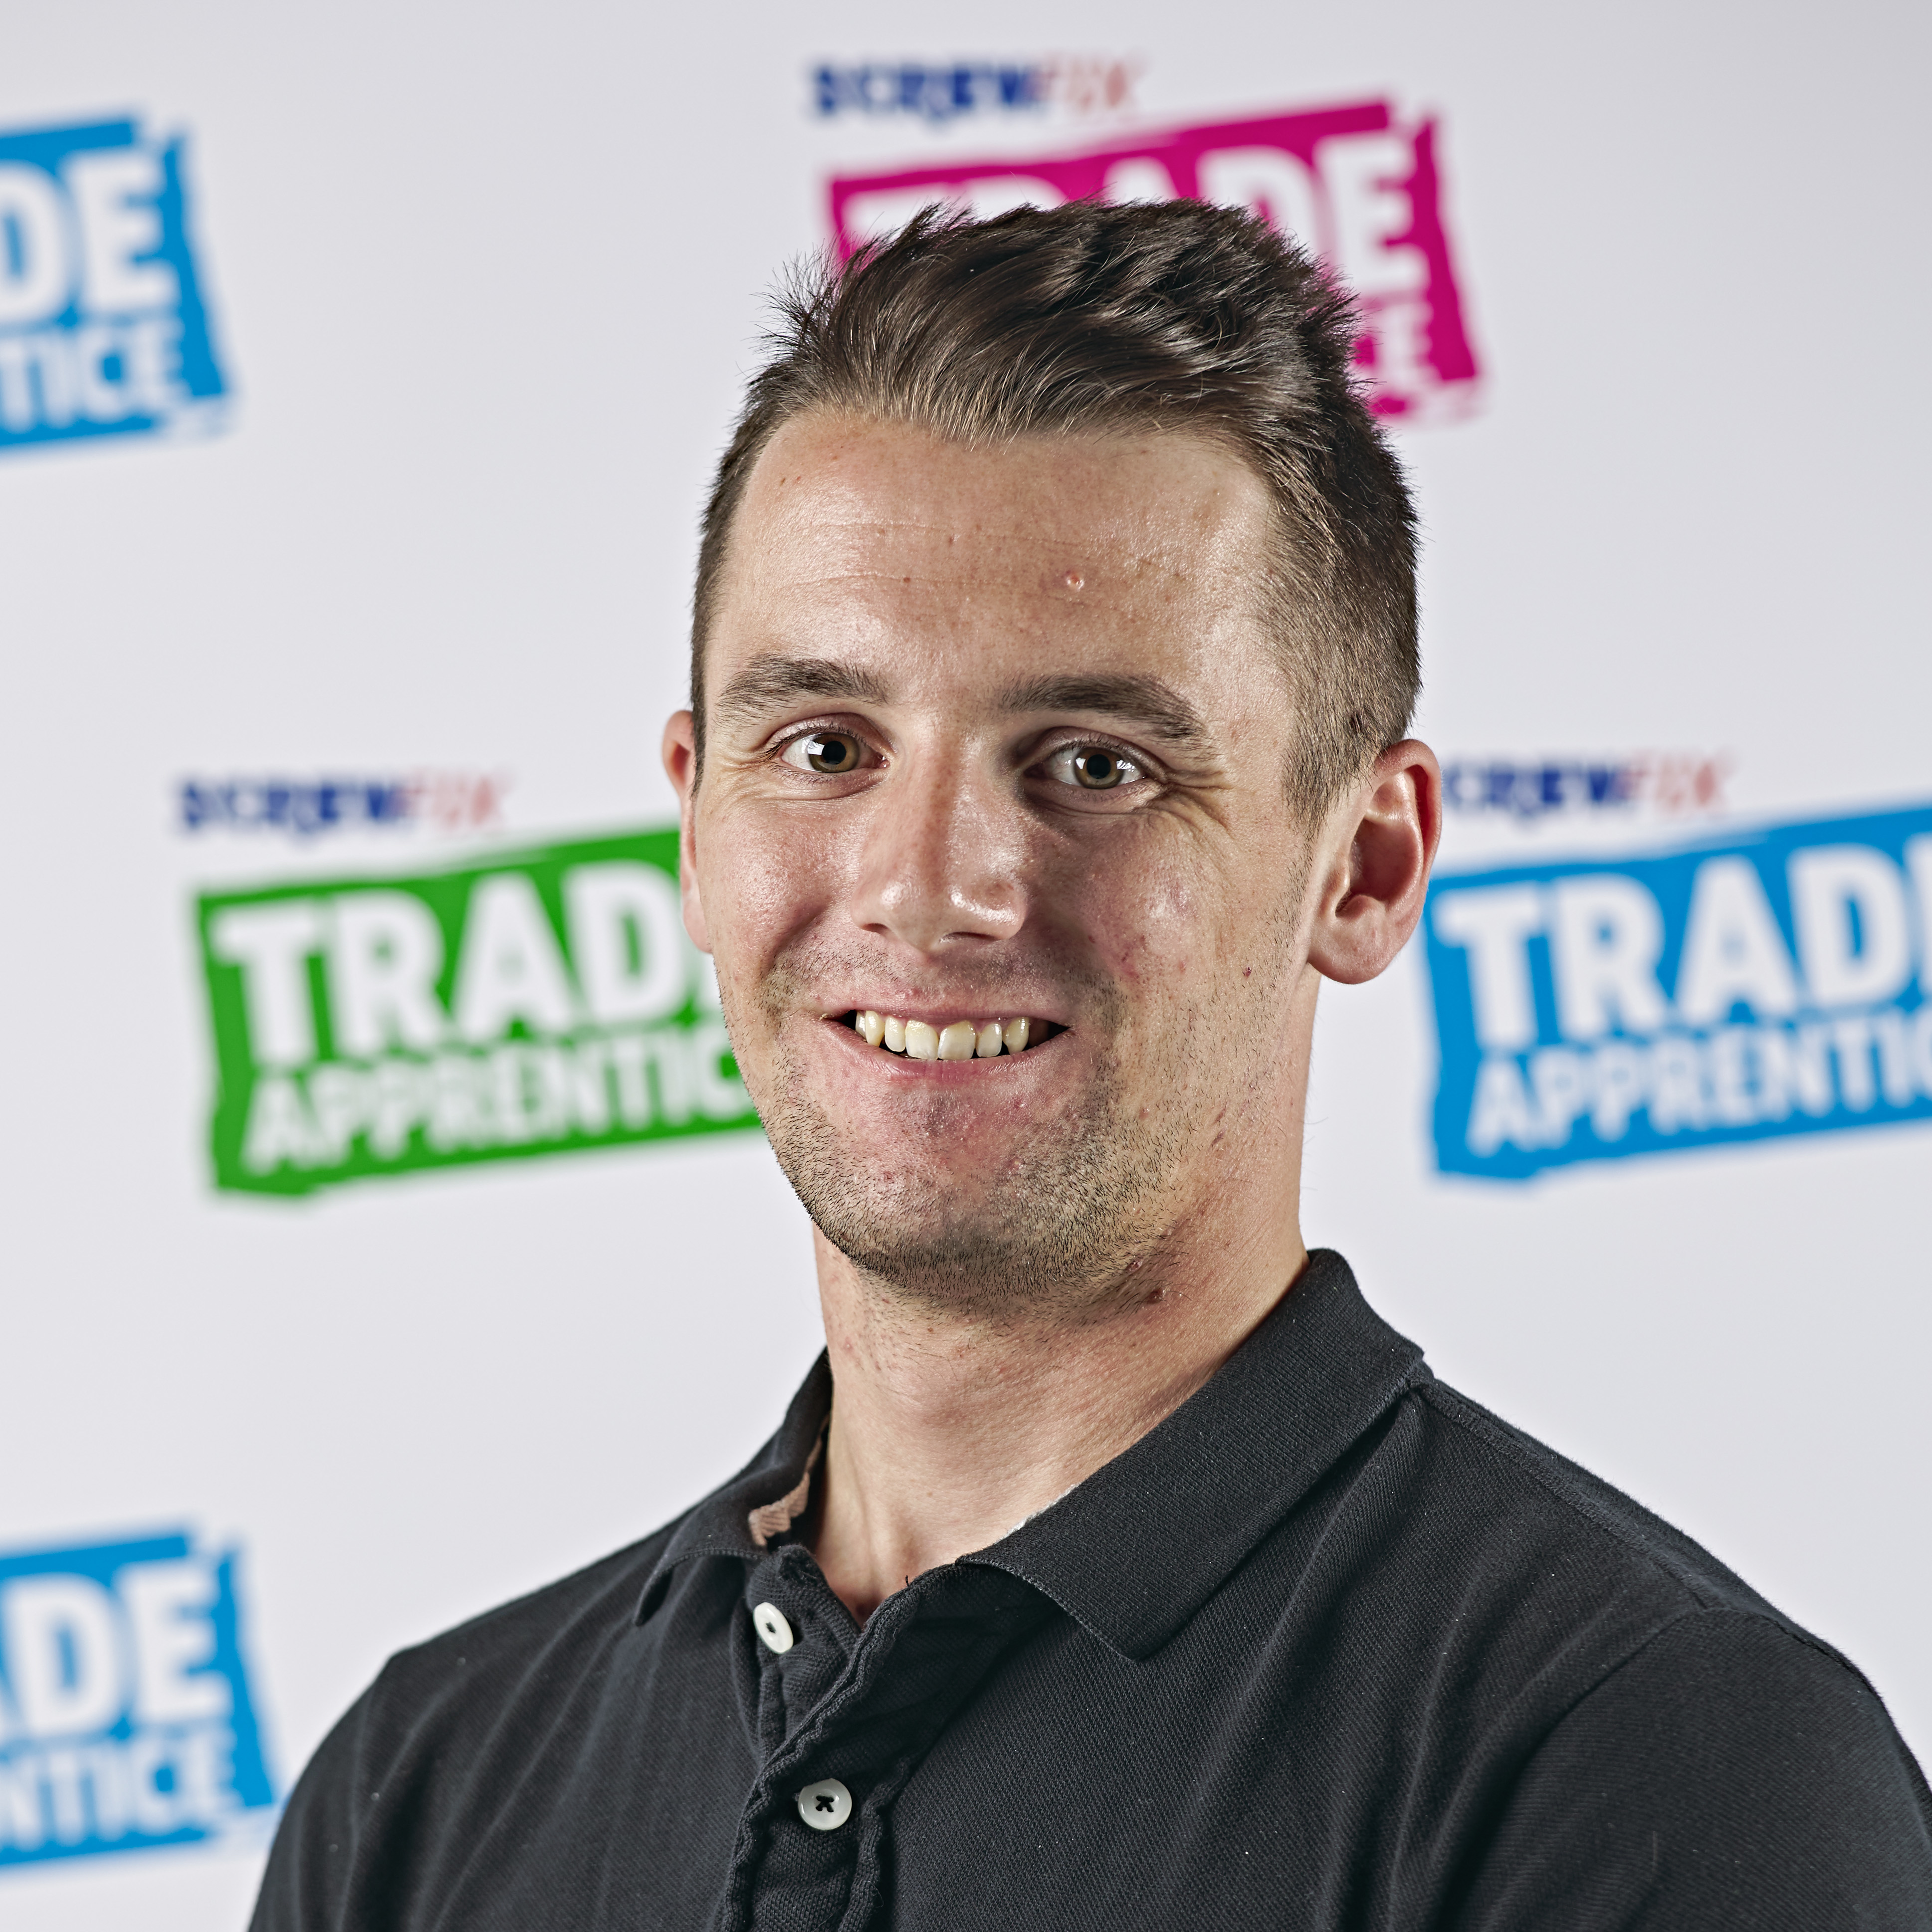 Grimsby apprentice honoured with an award in Screwfix national final